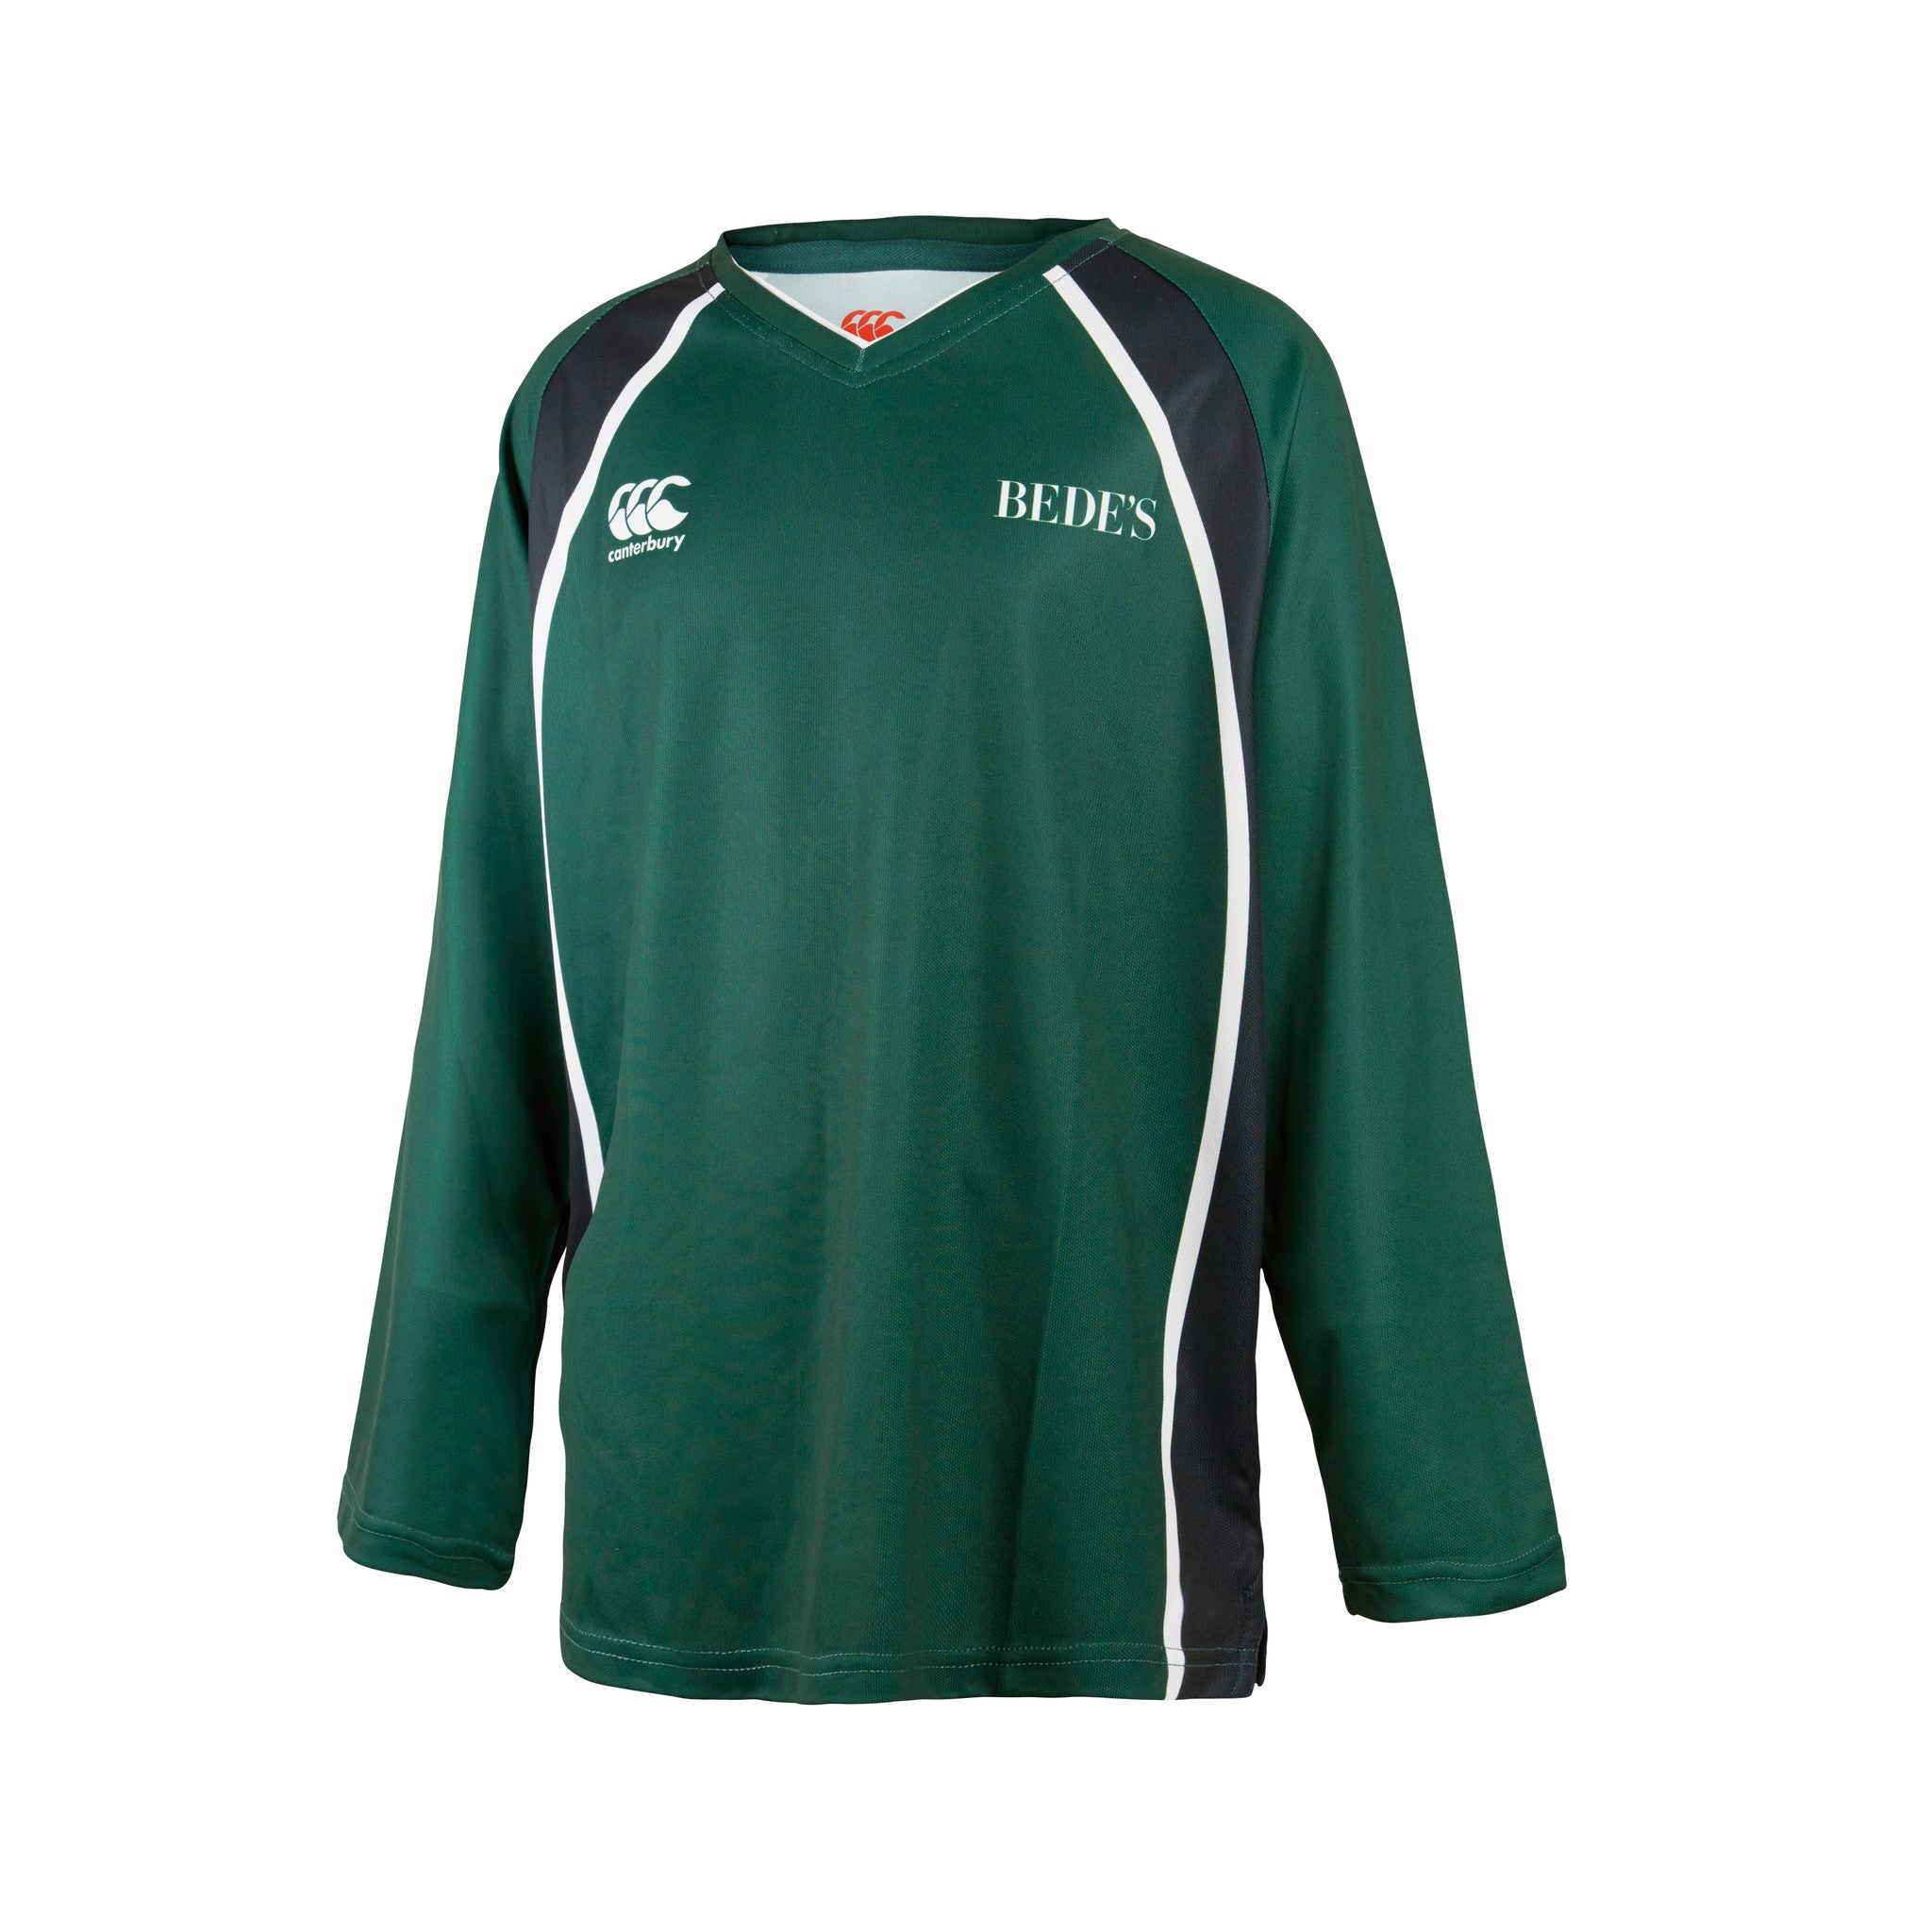 Bede's Football/Hockey Shirt Junior Sizes